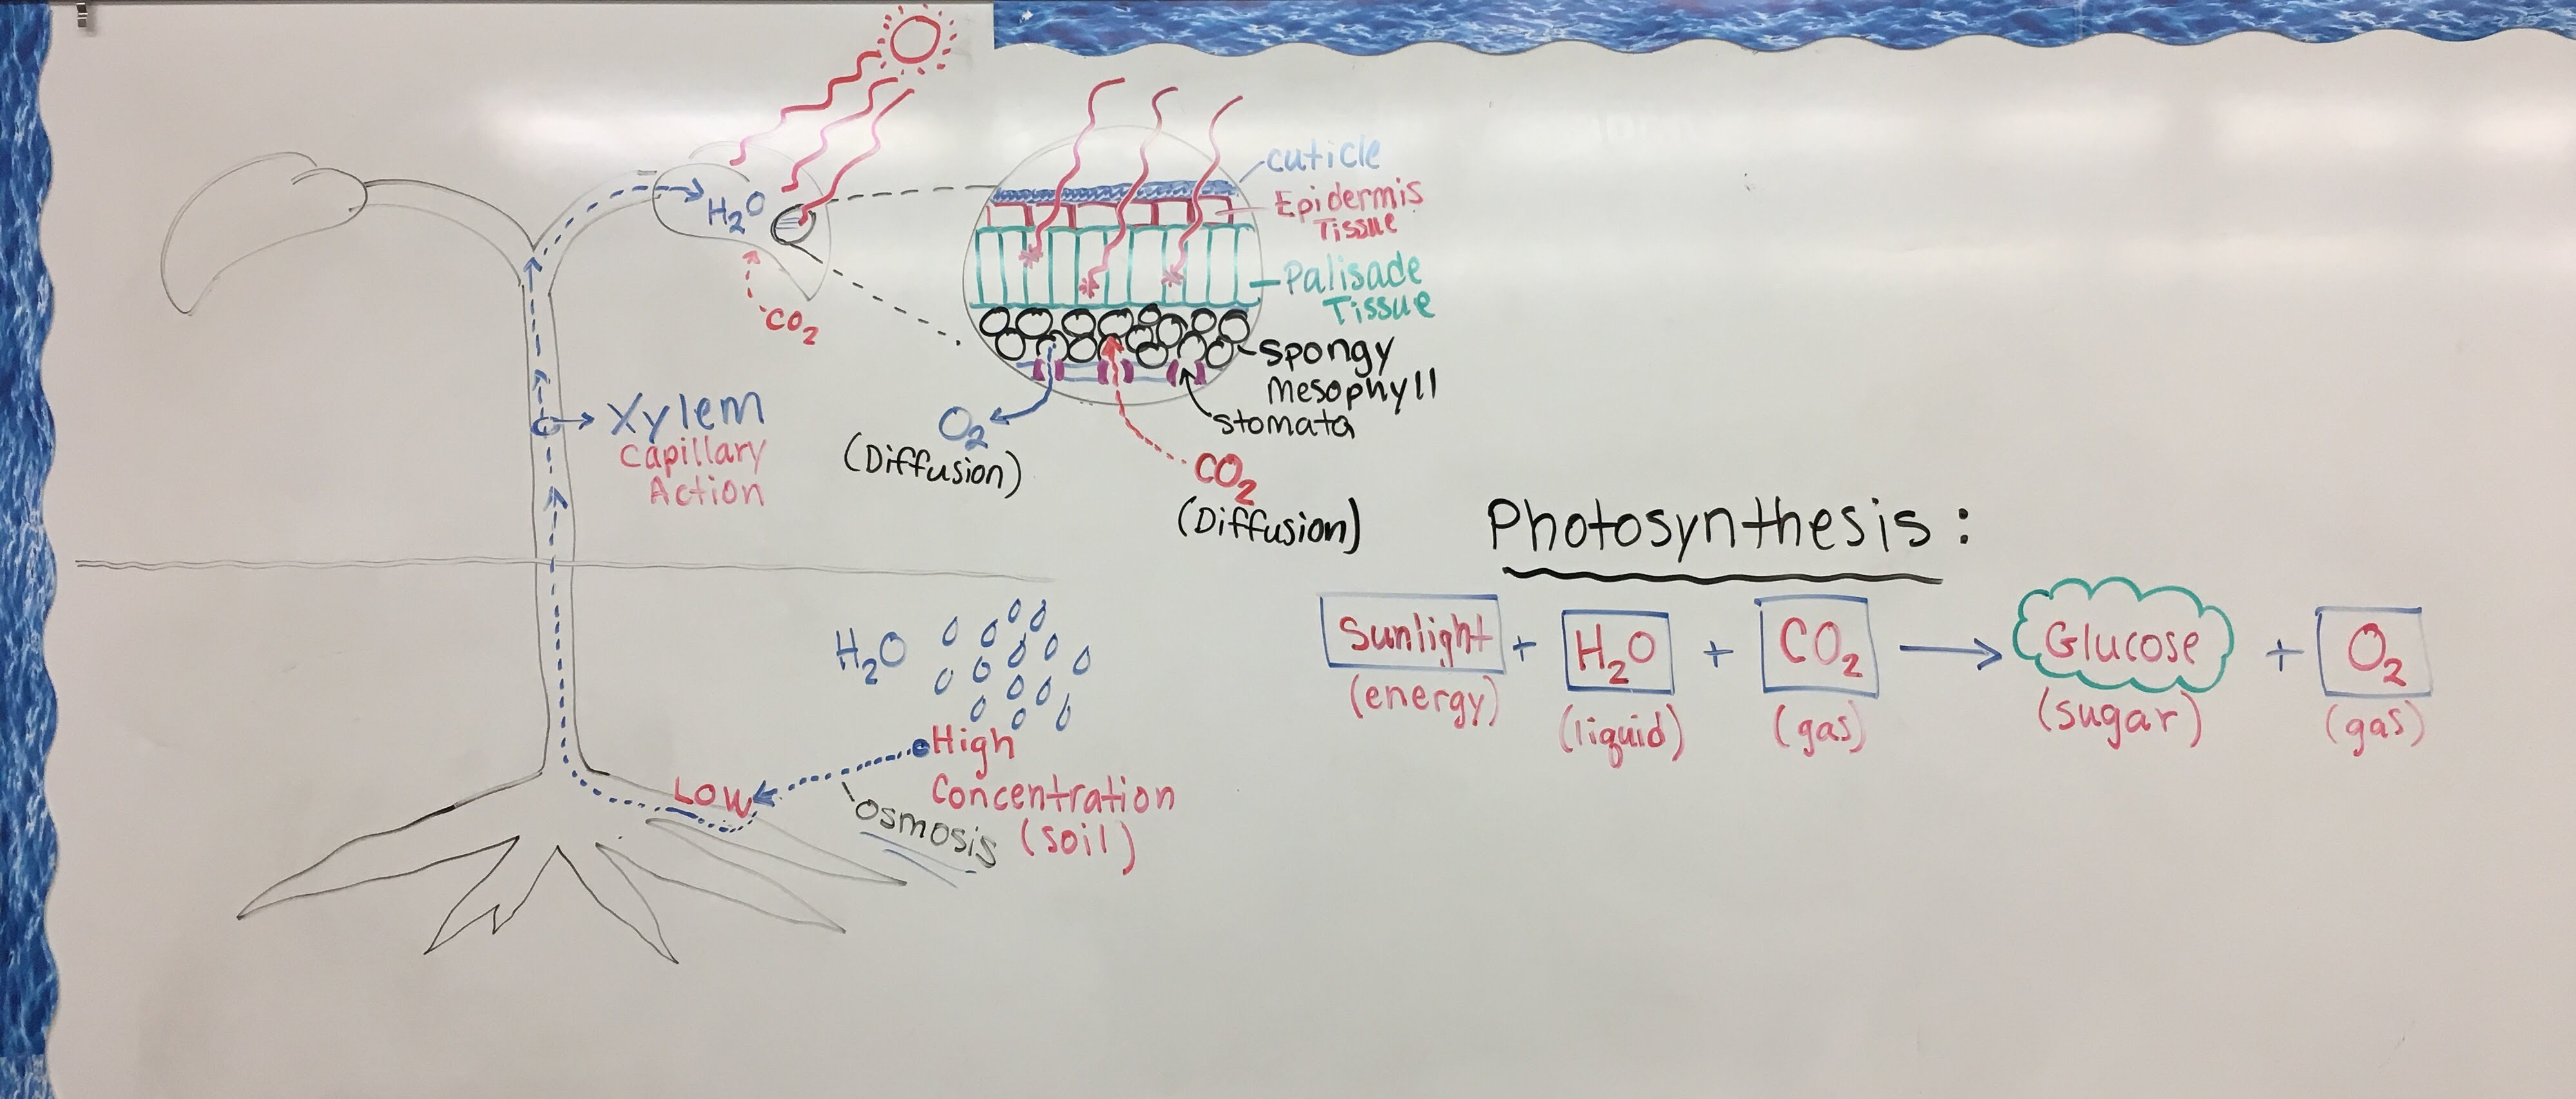 11/29/16) ~ NOTES: Plant Anatomy & Photosynthesis - Mr. Cuthbertson